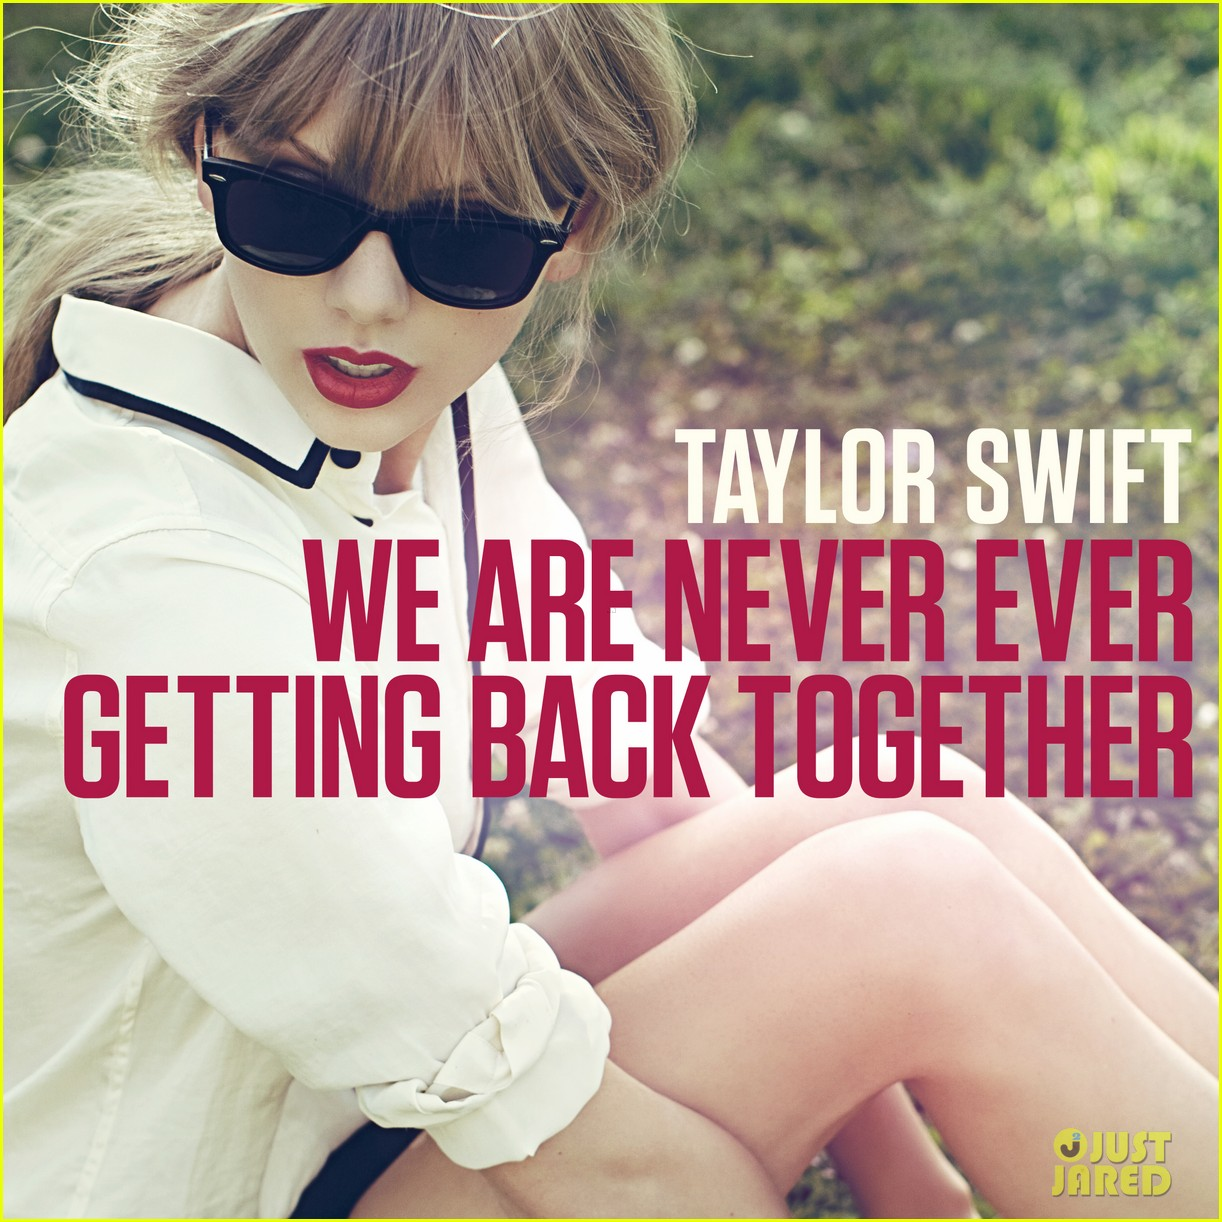 http://3.bp.blogspot.com/-RWVcJVoFpA4/UDLP3T_2uSI/AAAAAAAAEJQ/DI-3fgHx720/s1600/taylor-swift-red-cover-art-announcement-02.jpg